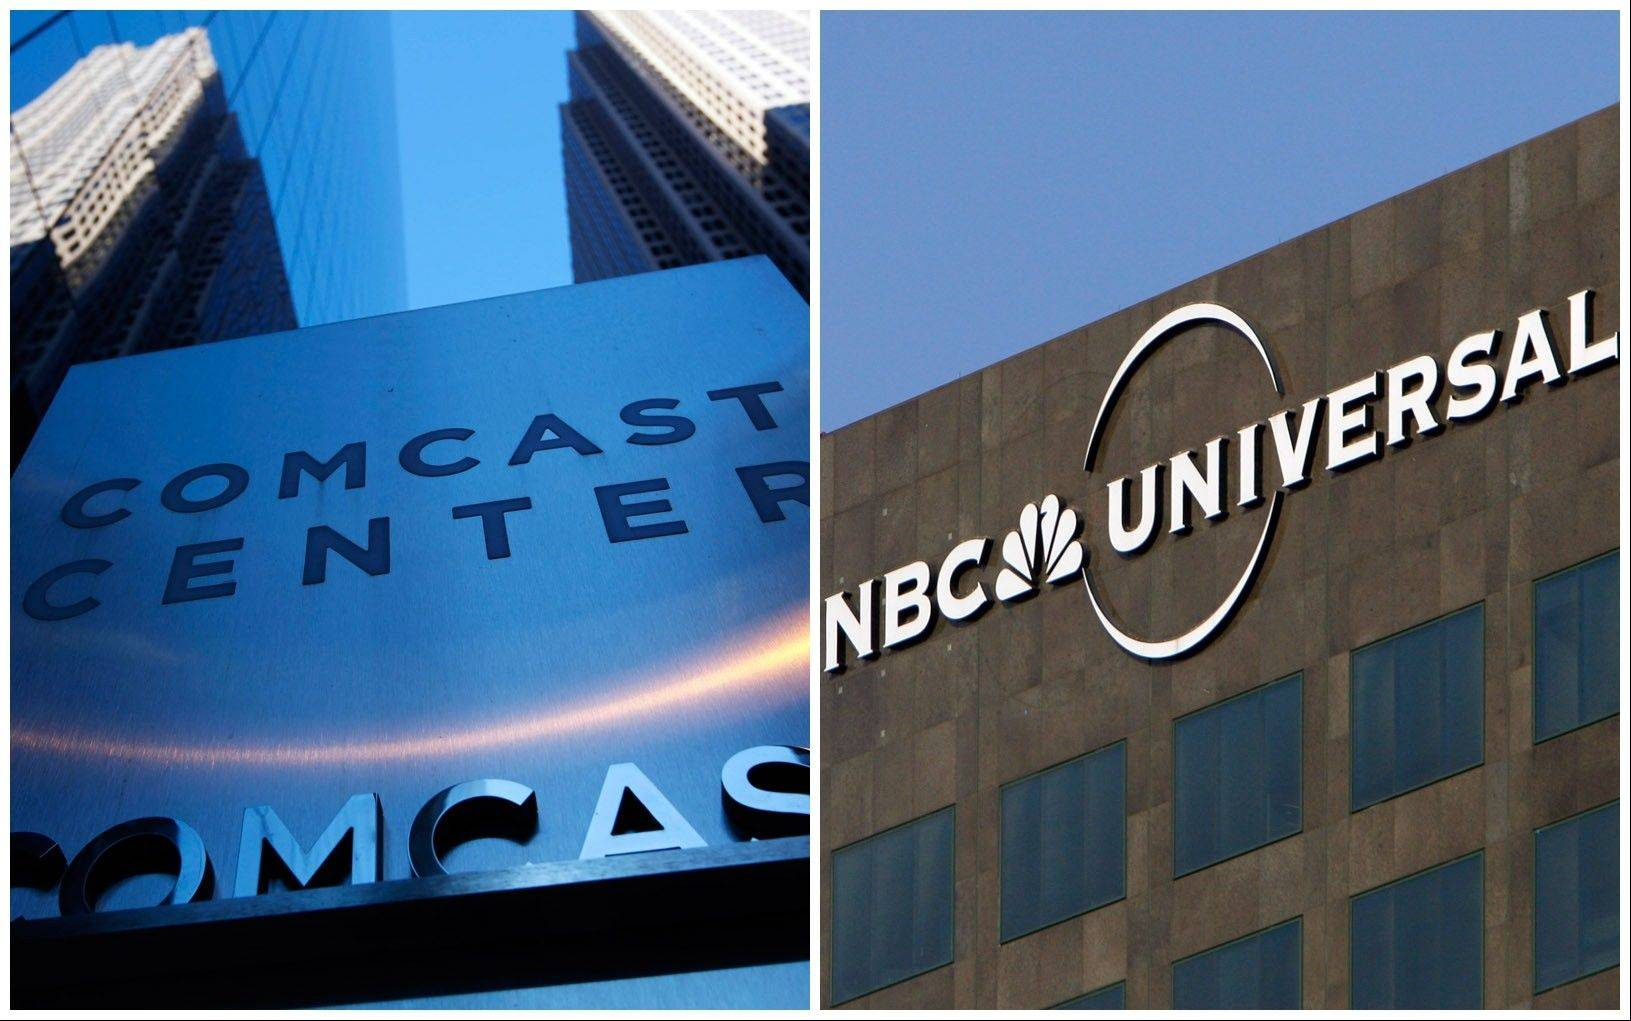 Comcast said on Tuesday it's buying General Electric's 49 percent stake in NBCUniversal joint venture for $16.7 billion. Comcast Corp. had bought a majority stake in the television and movie company in 2011. It had planned to take a larger stake in it over time.